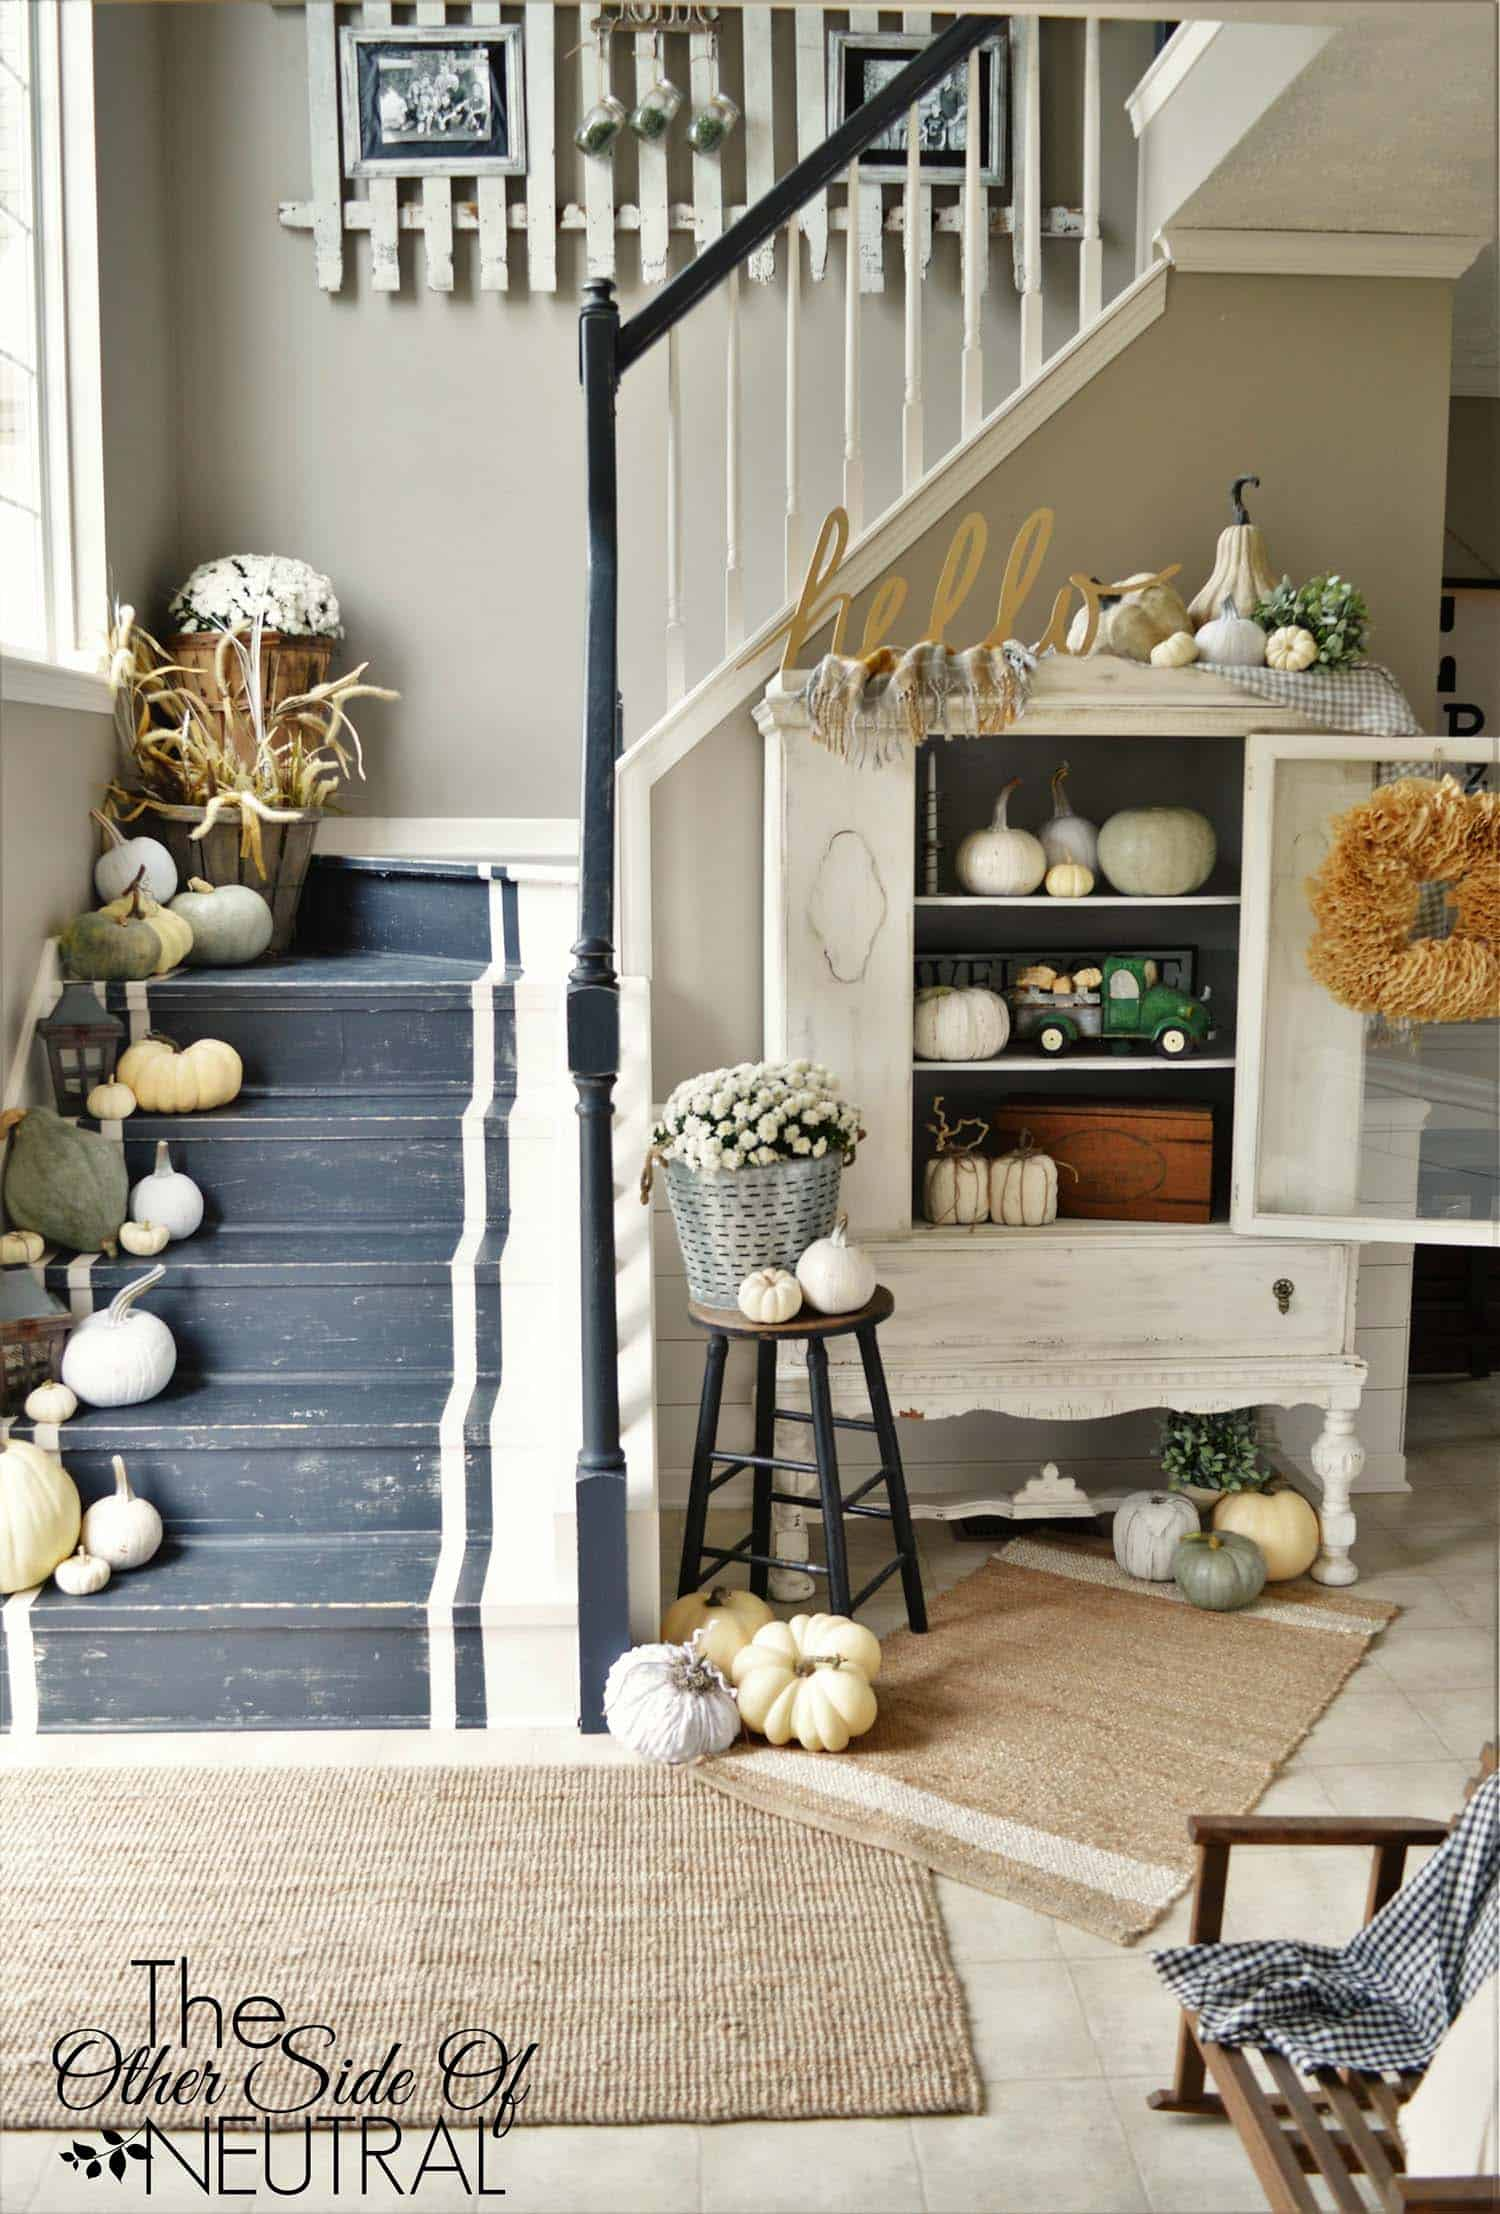 Fall-Inspired Entryway Decorating Ideas-20-1 Kindesign